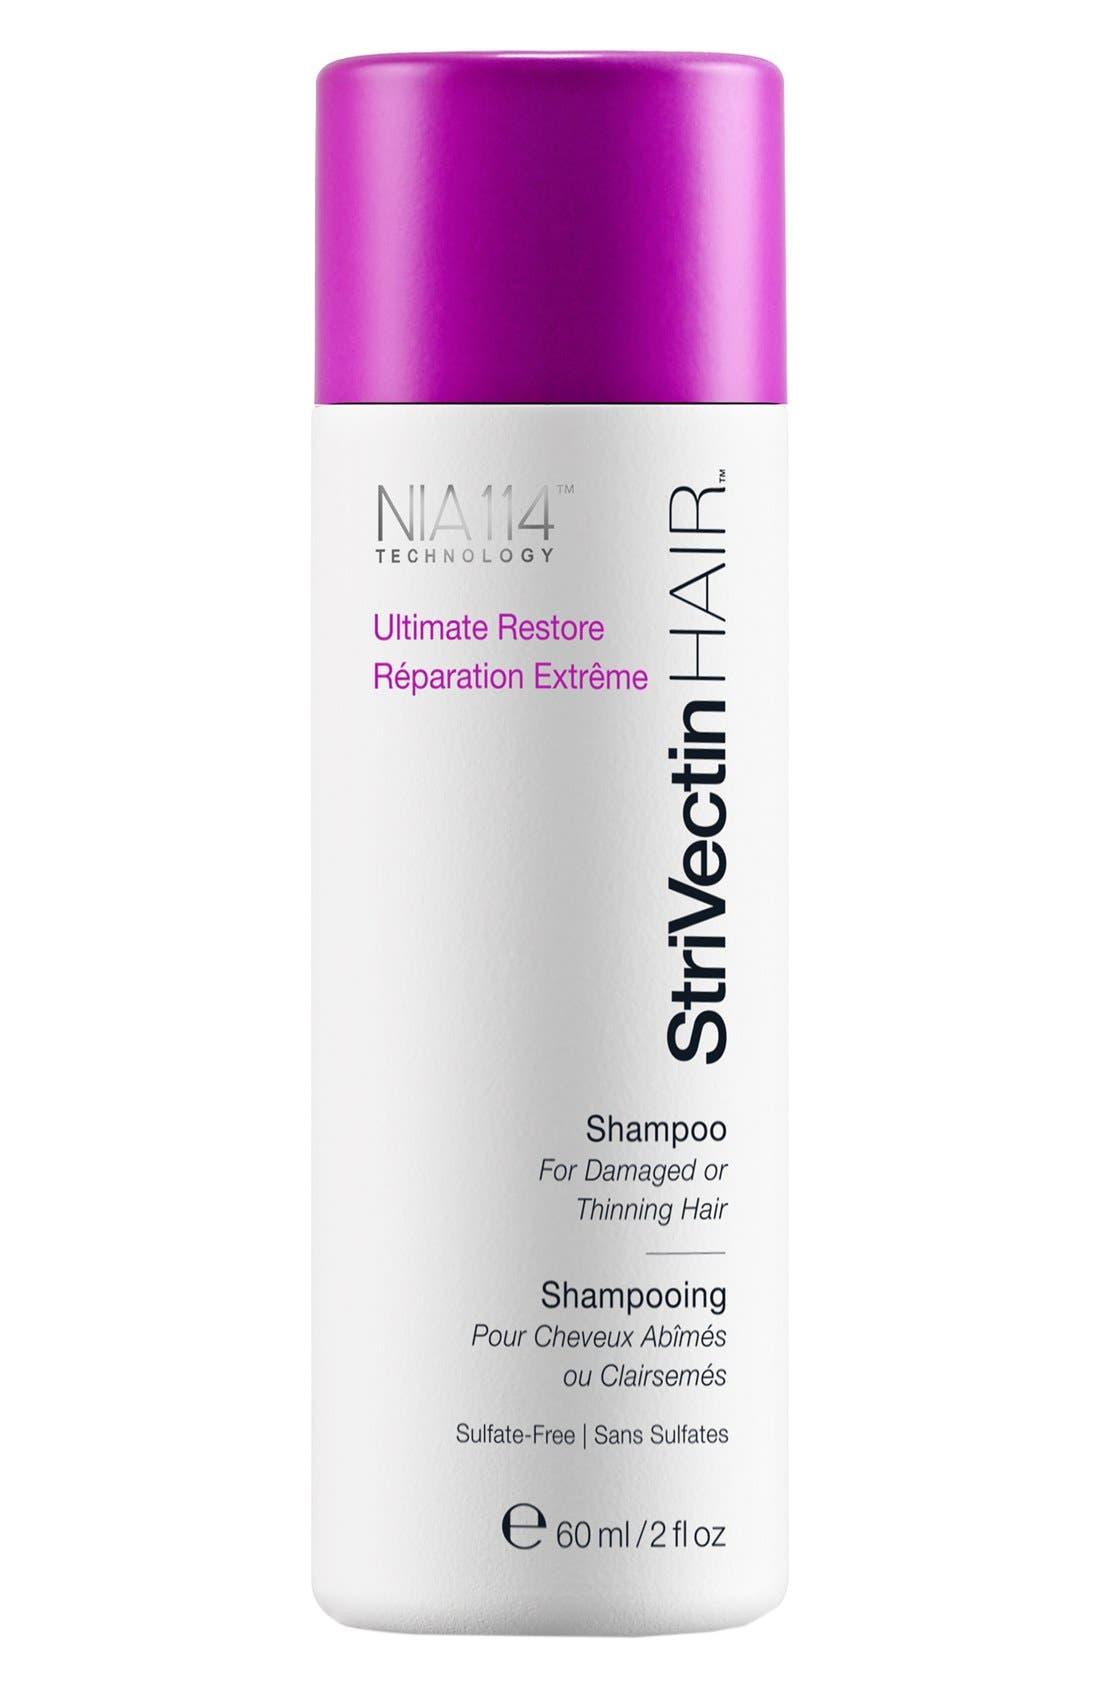 StriVectinHAIR<sup>™</sup> 'Ultimate Restore' Shampoo for Damaged or Thinning Hair,                             Main thumbnail 1, color,                             000